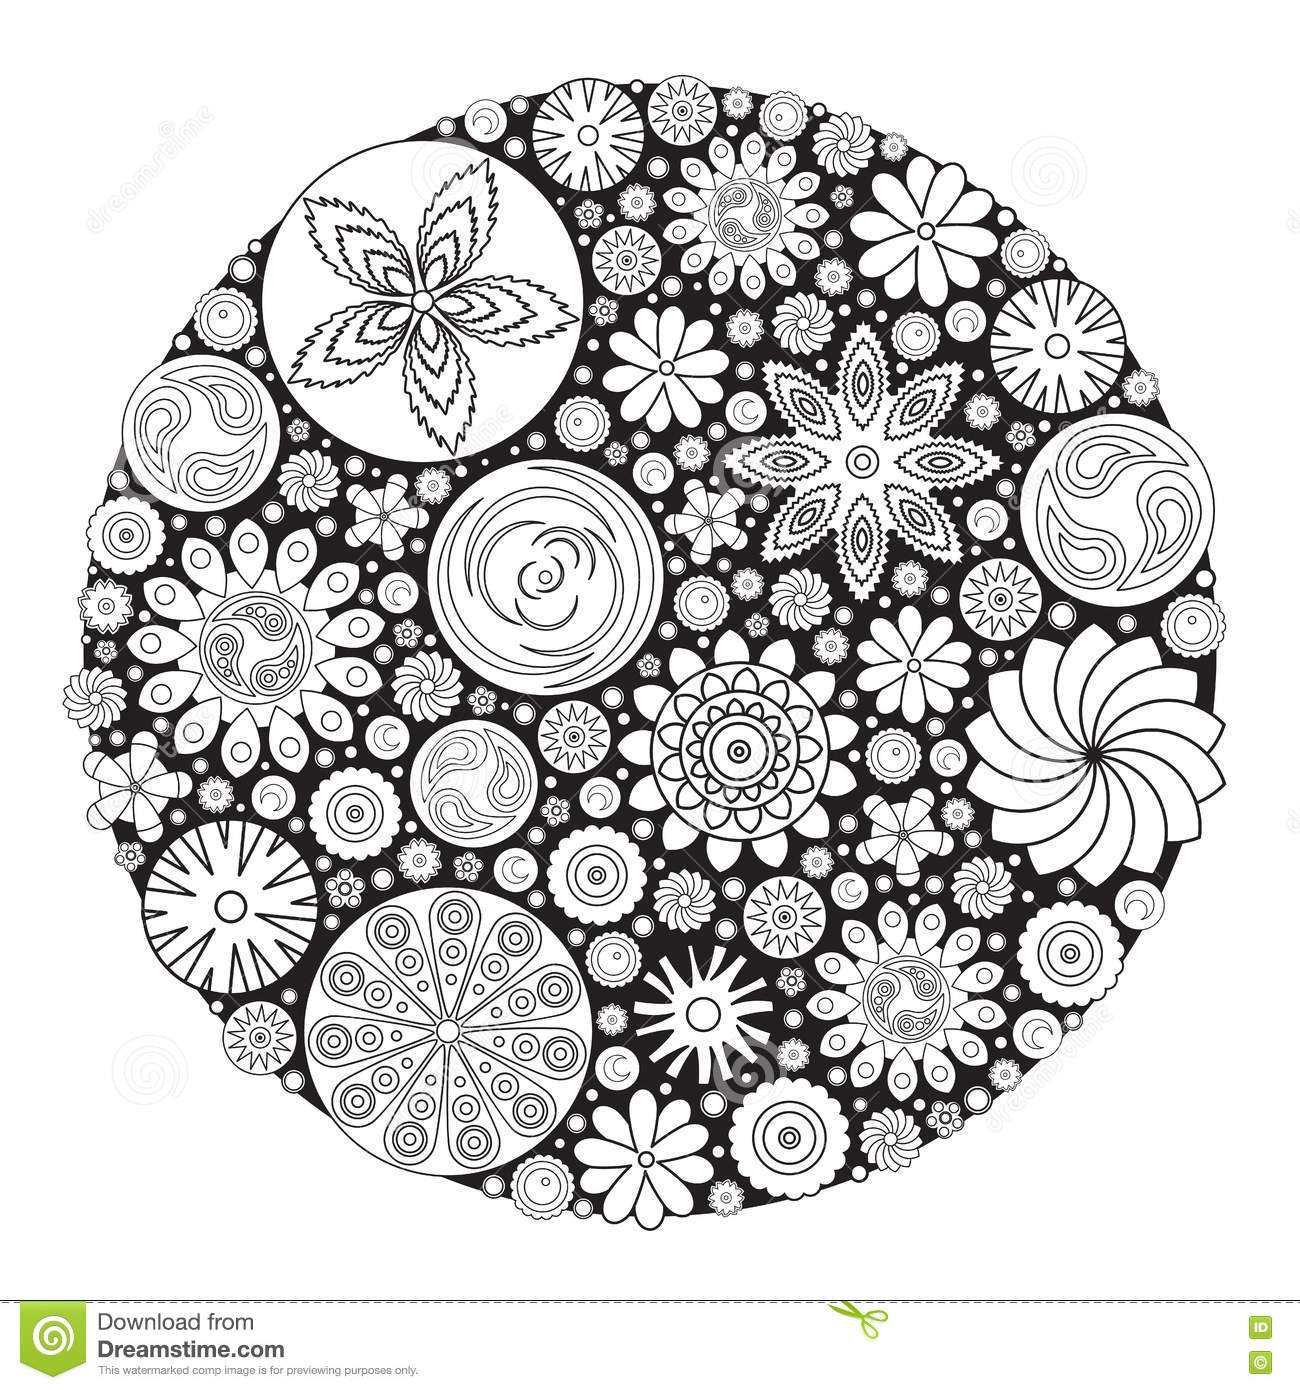 Coloring book grown up - Flower Design For Coloring Book For Grown Up